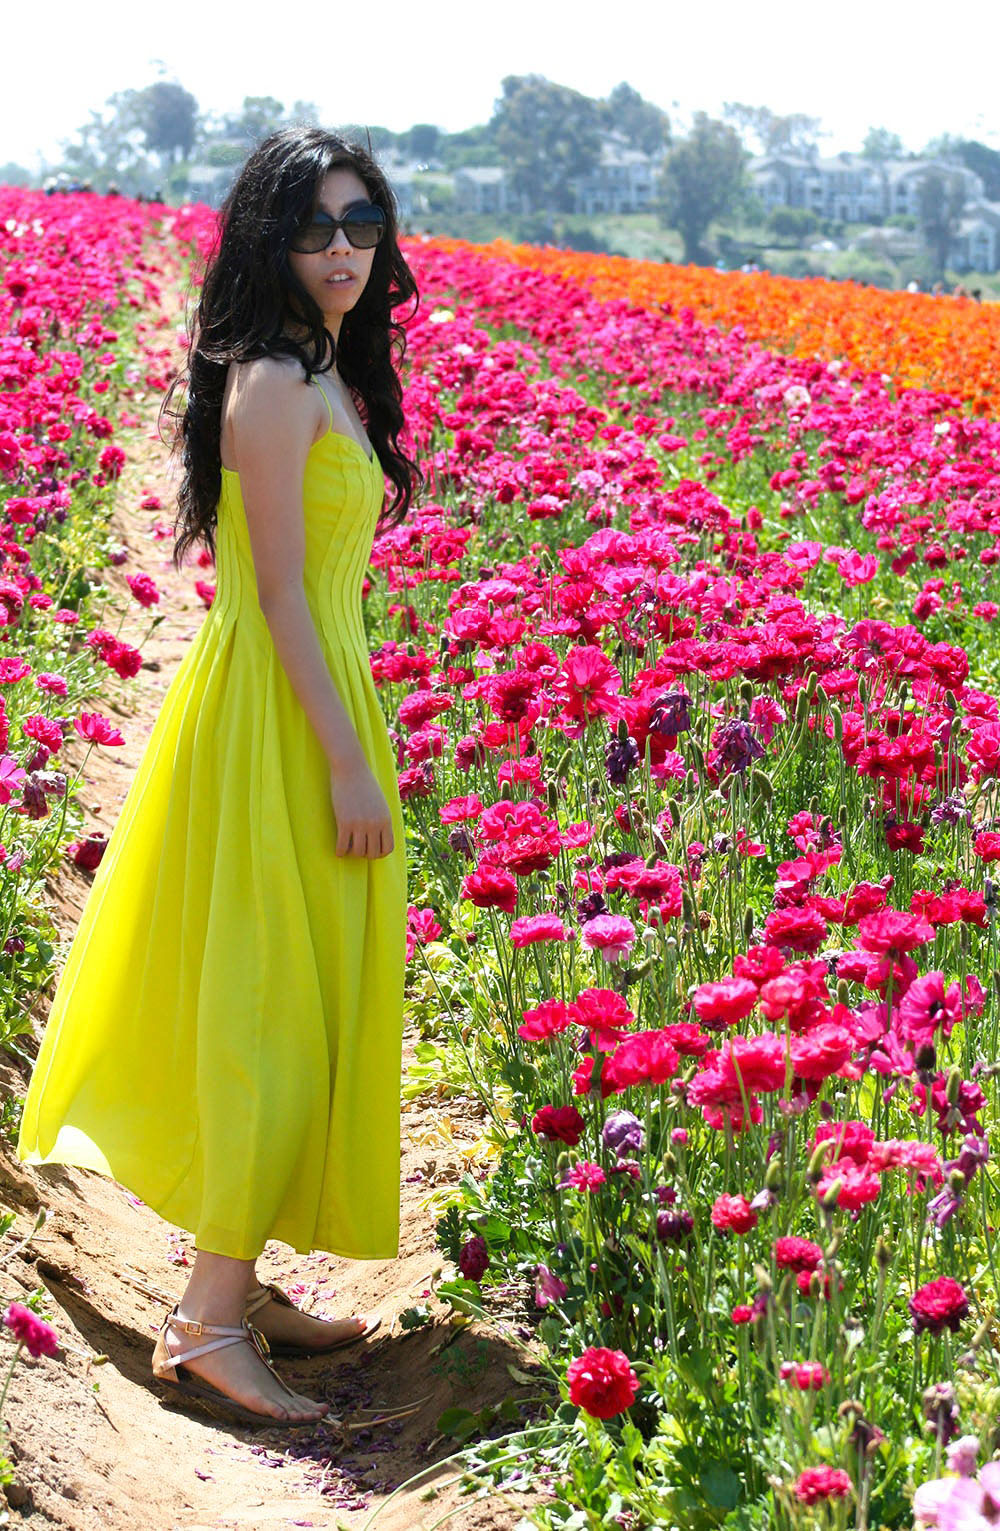 ranunculus in carlsbad_cool flower fields